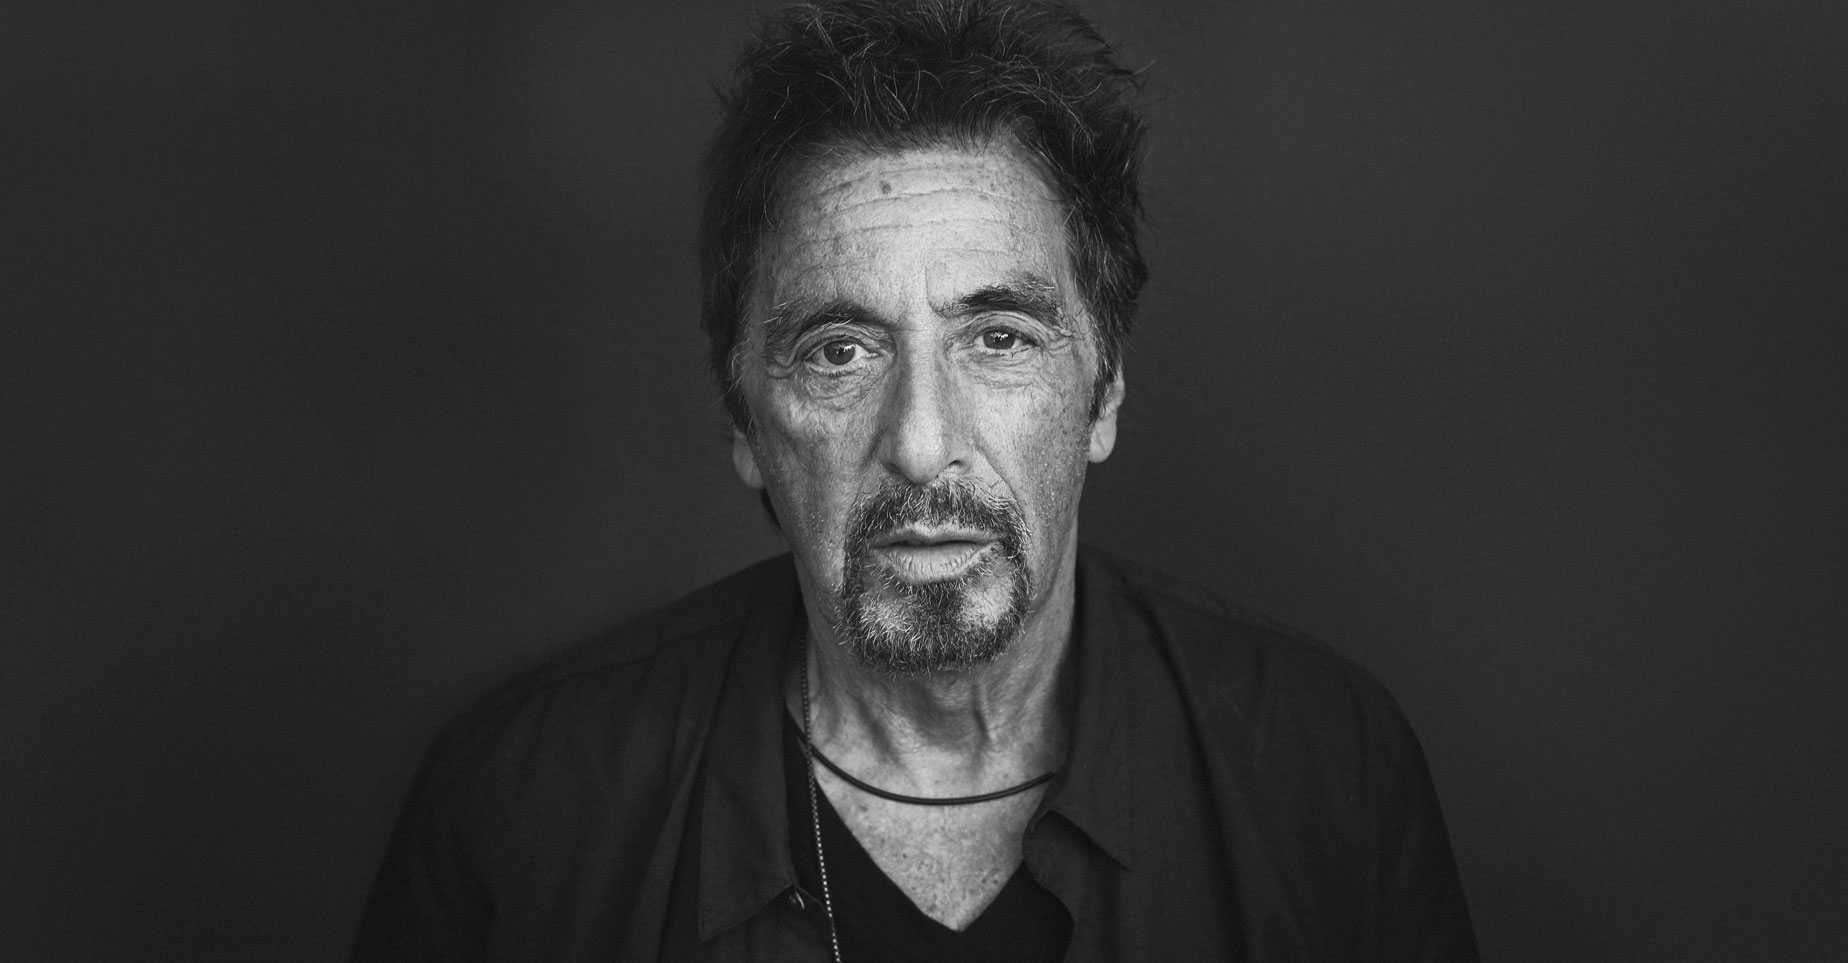 Al Pacino weight, height and age. Body measurements!